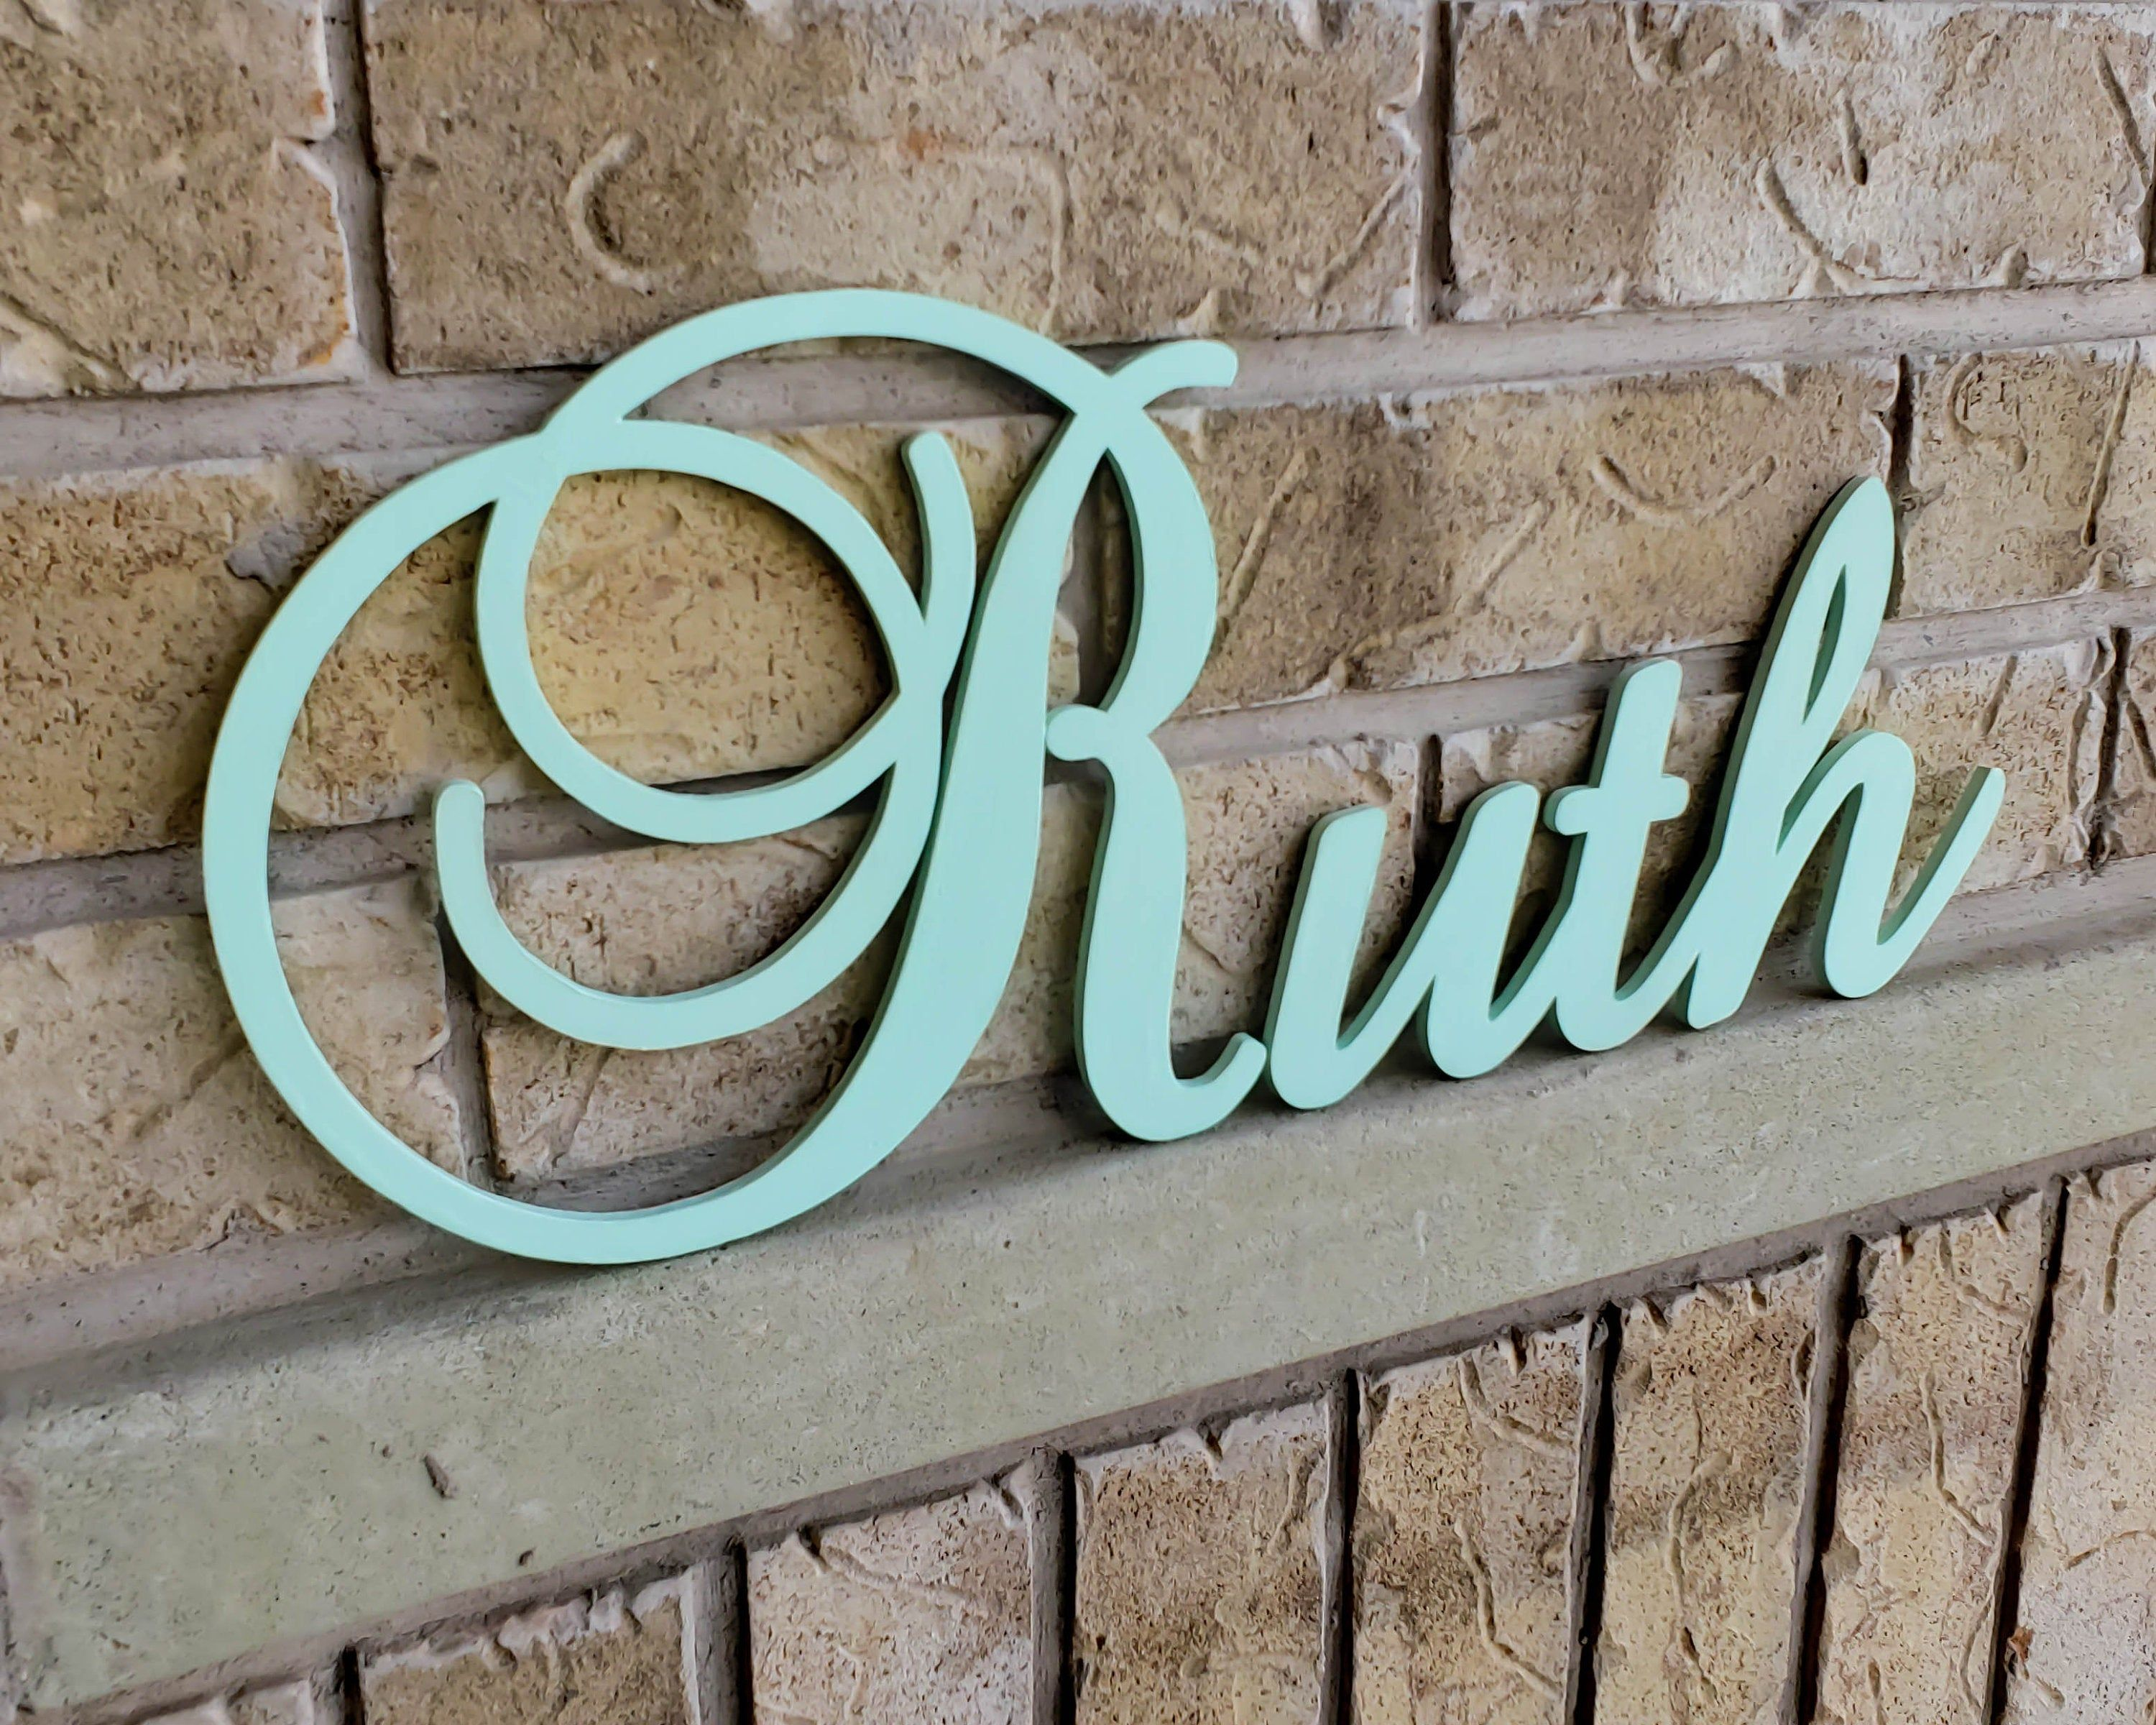 Large Wooden Letters For Nursery Decor Nursery Name Sign Baby Name Sign Personalized Wood Letters Kids Name Sign In 2020 Wooden Letters For Nursery Large Wooden Letters Baby Name Signs